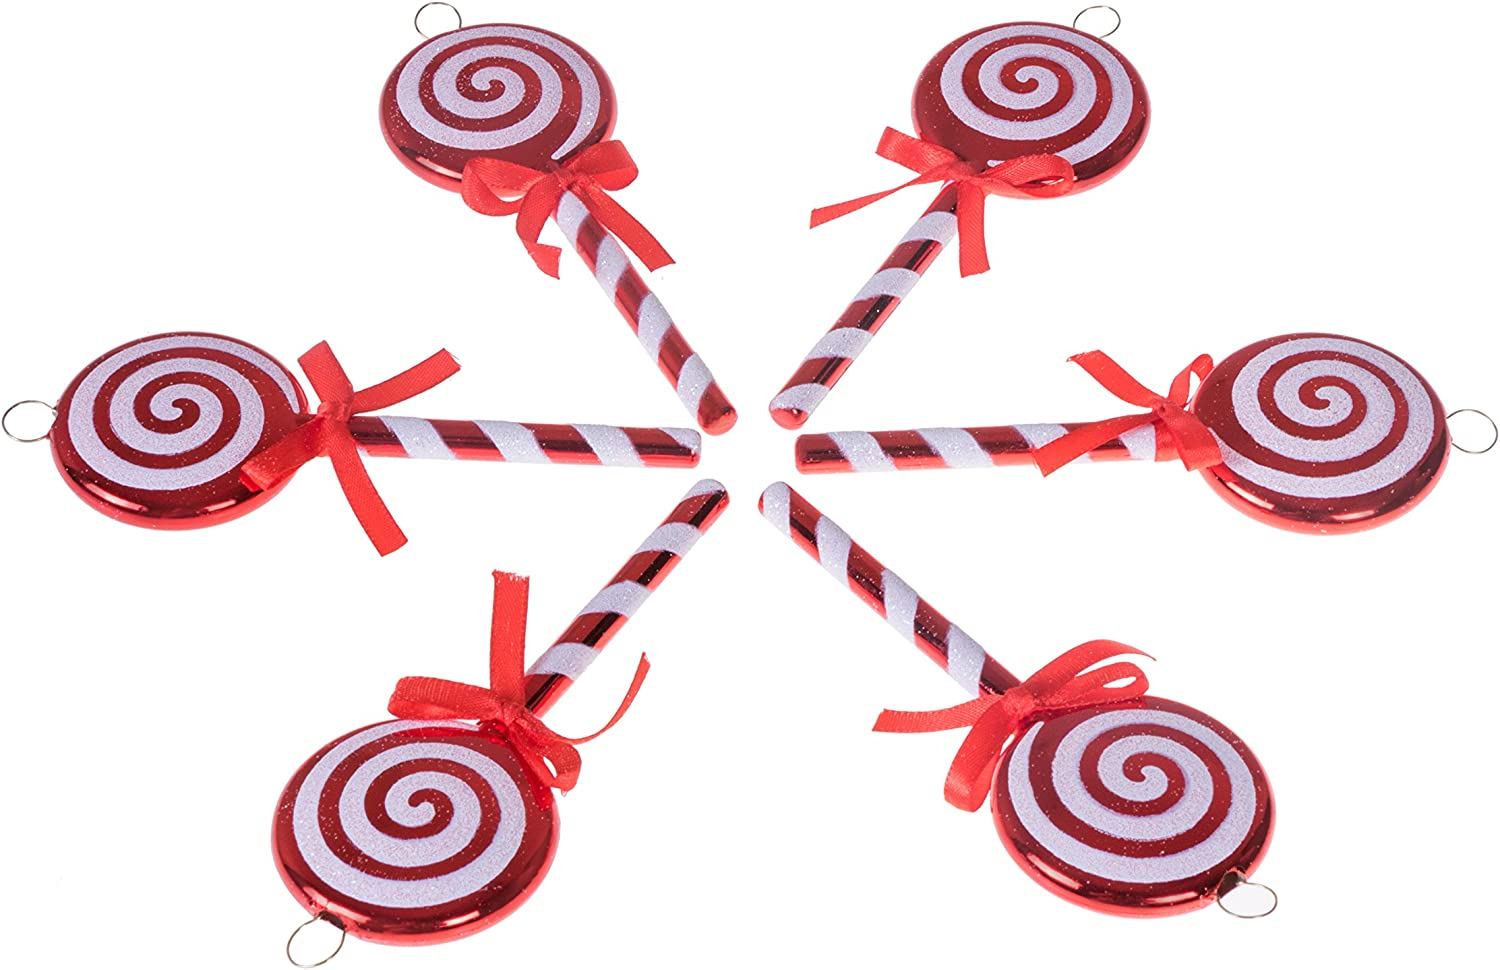 "Clever Creations Red and White Lollipop Christmas Tree Ornament Set | 6 Pack | Festive Holiday Décor | Lightweight Shatter Resistant | Strings Included | 5"" Tall"